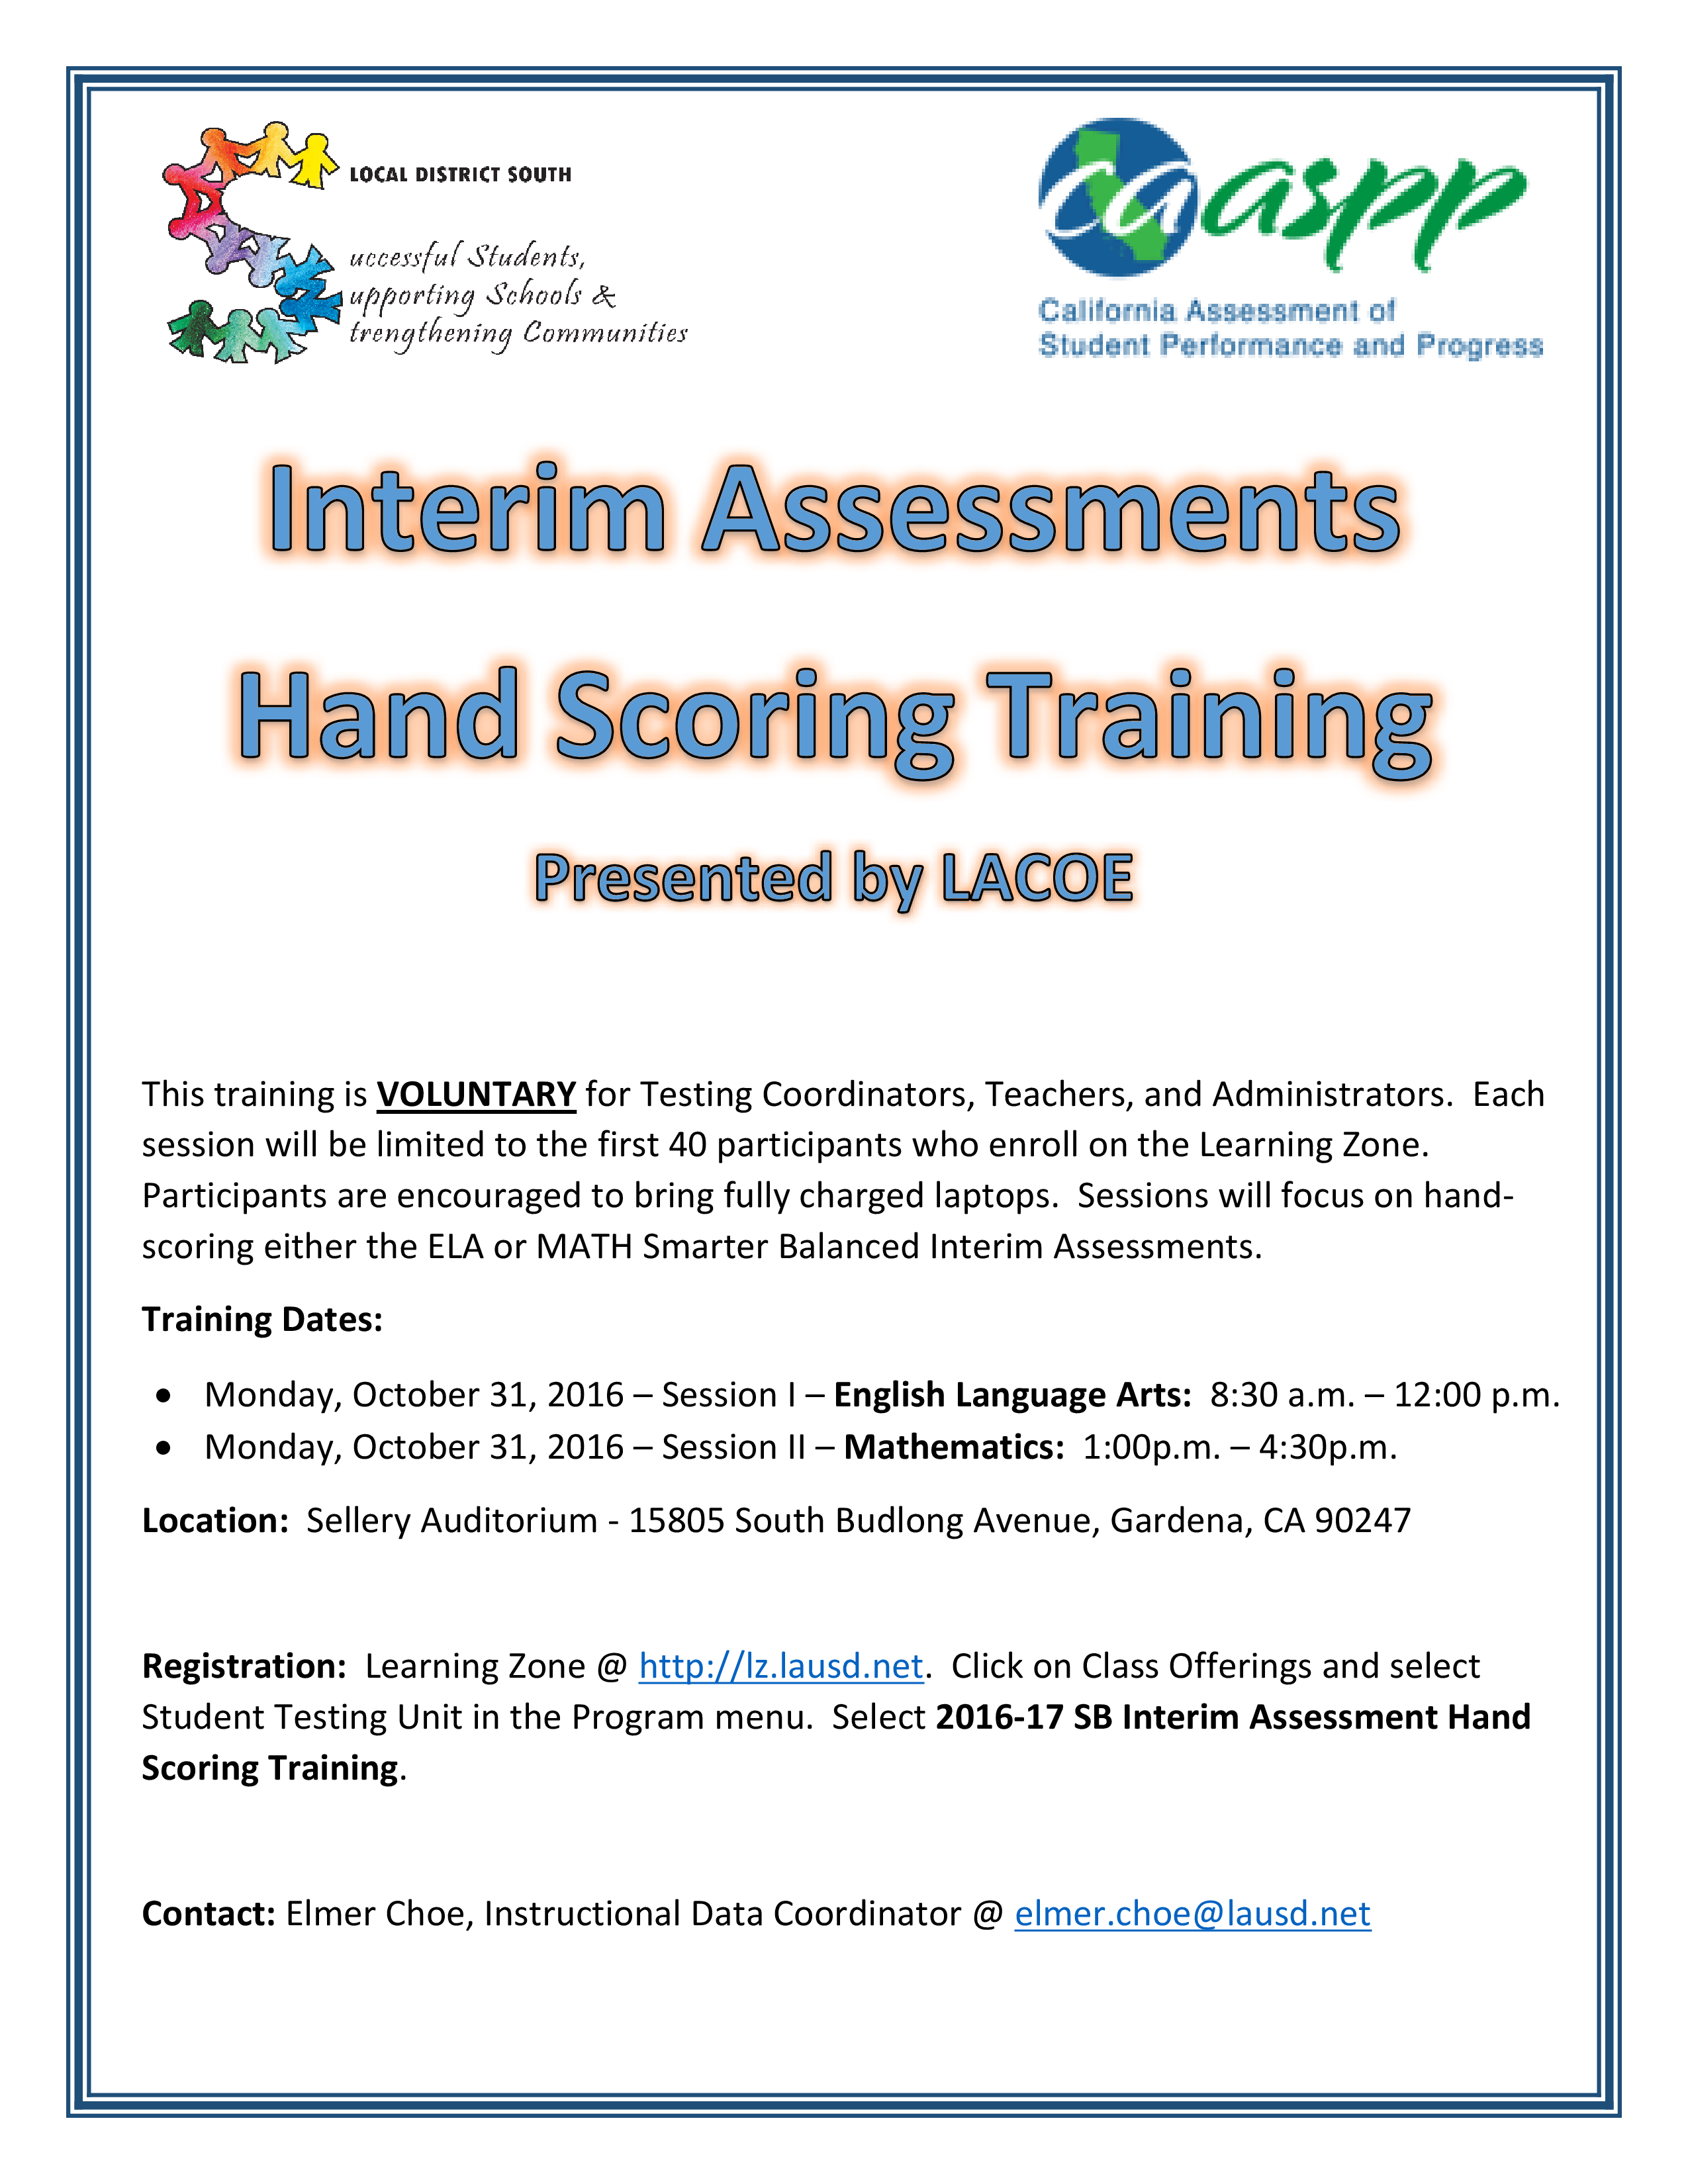 Local District South / Instructional Data